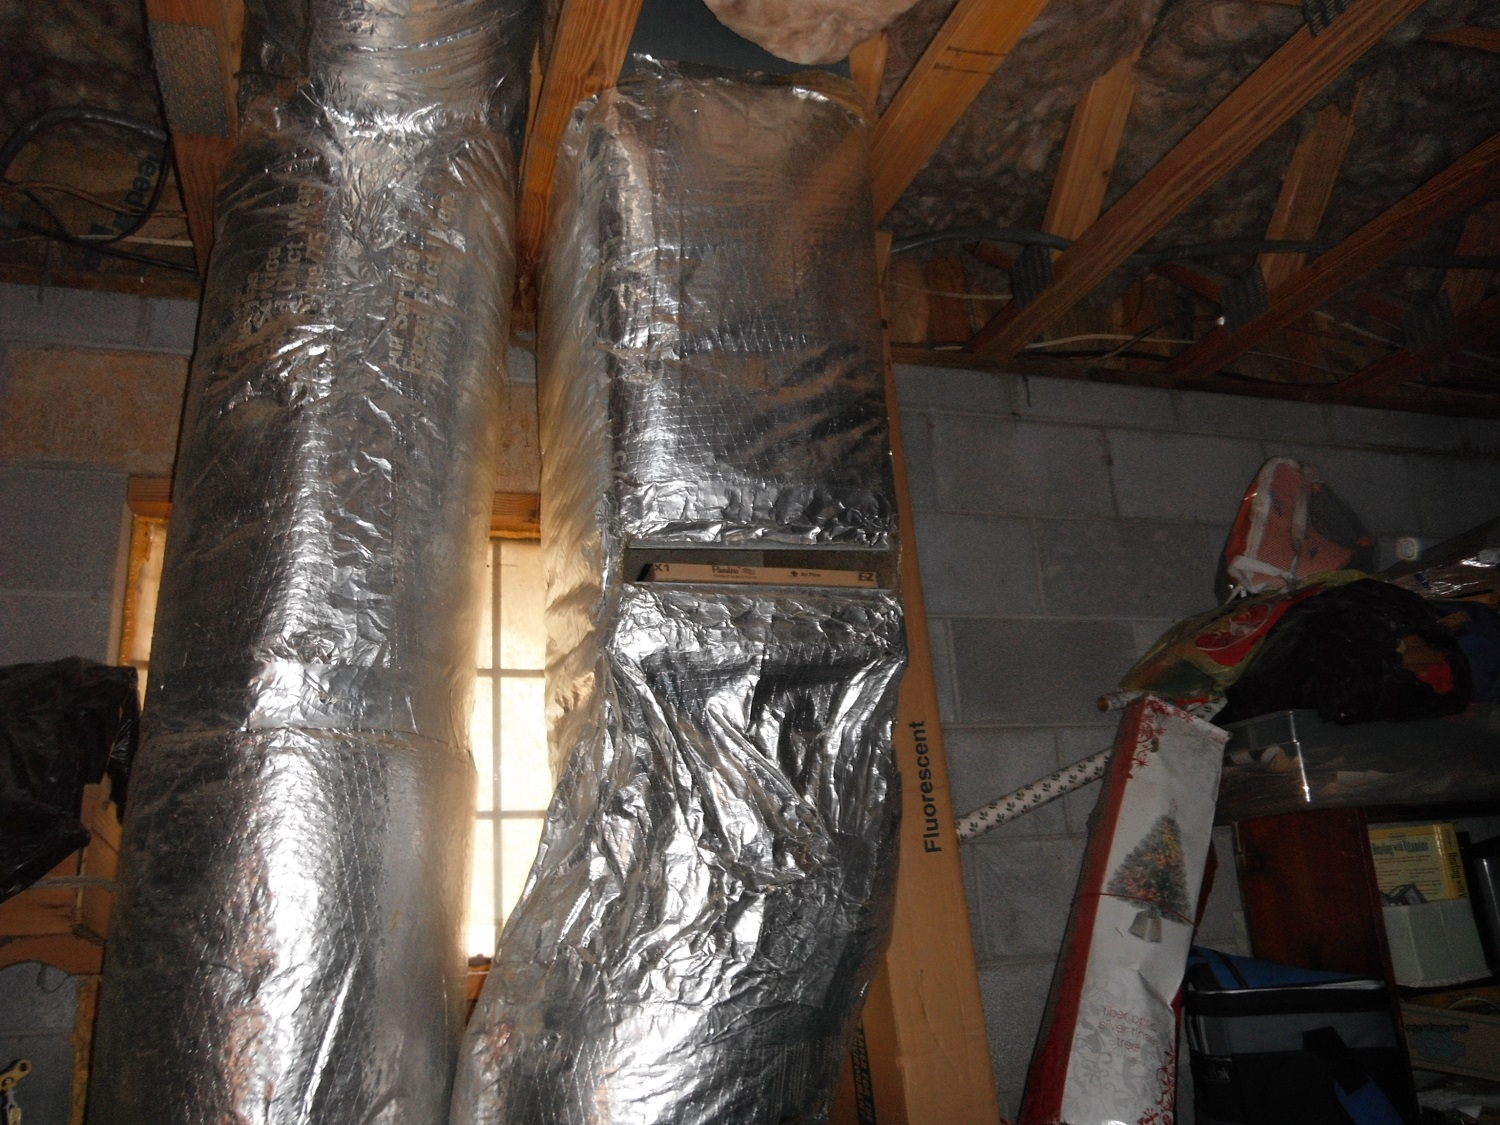 an open filter slot in the return duct means a poorly working duct system